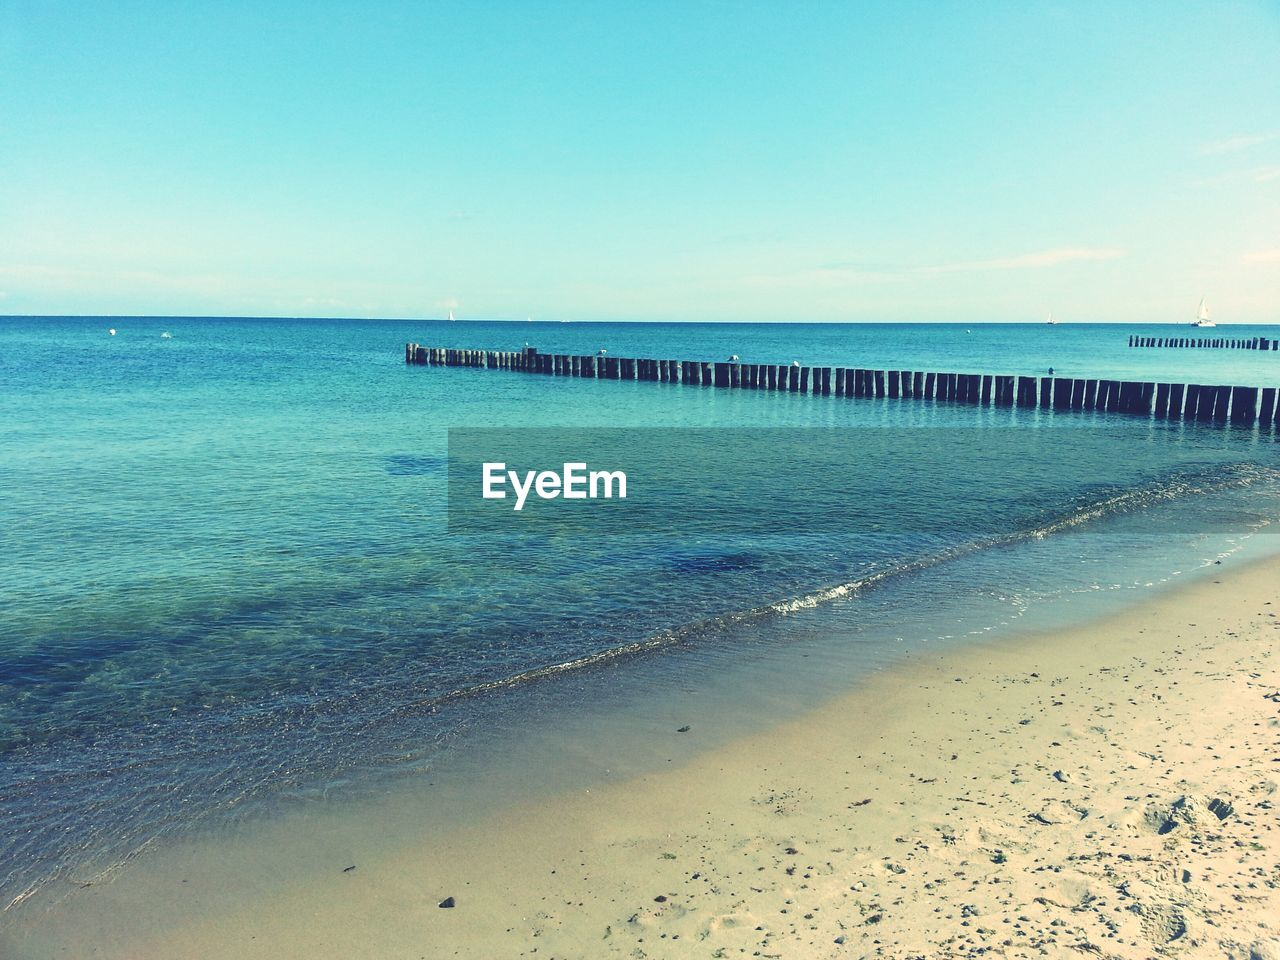 Row Of Wooden Posts On Sea Against Blue Sky